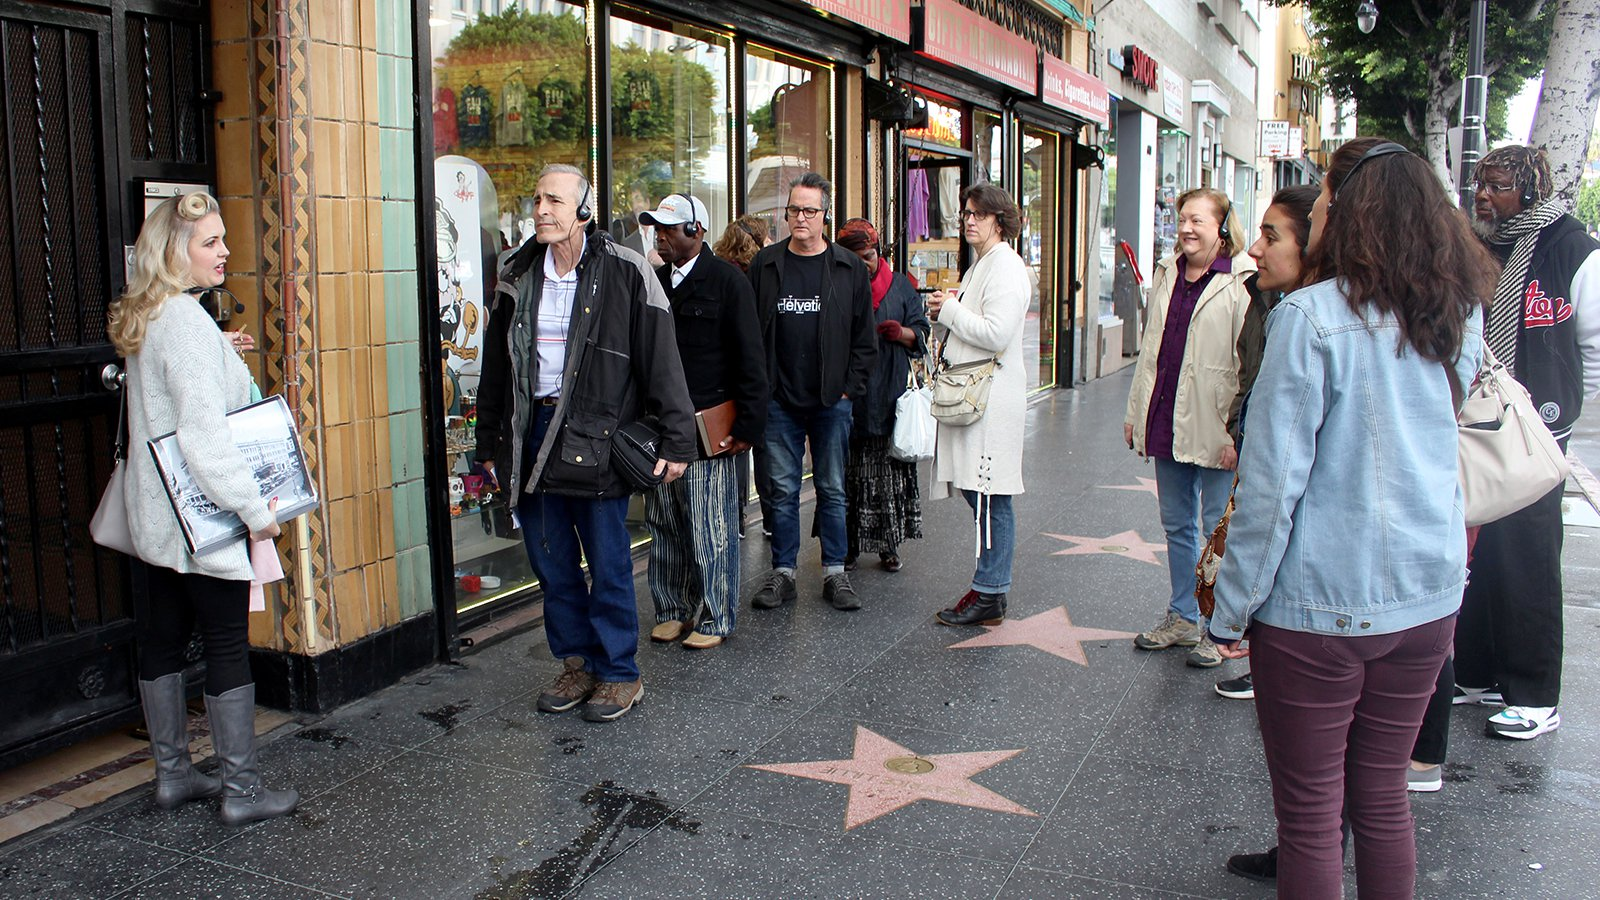 Tour looks at Christian beginnings of Hollywood.